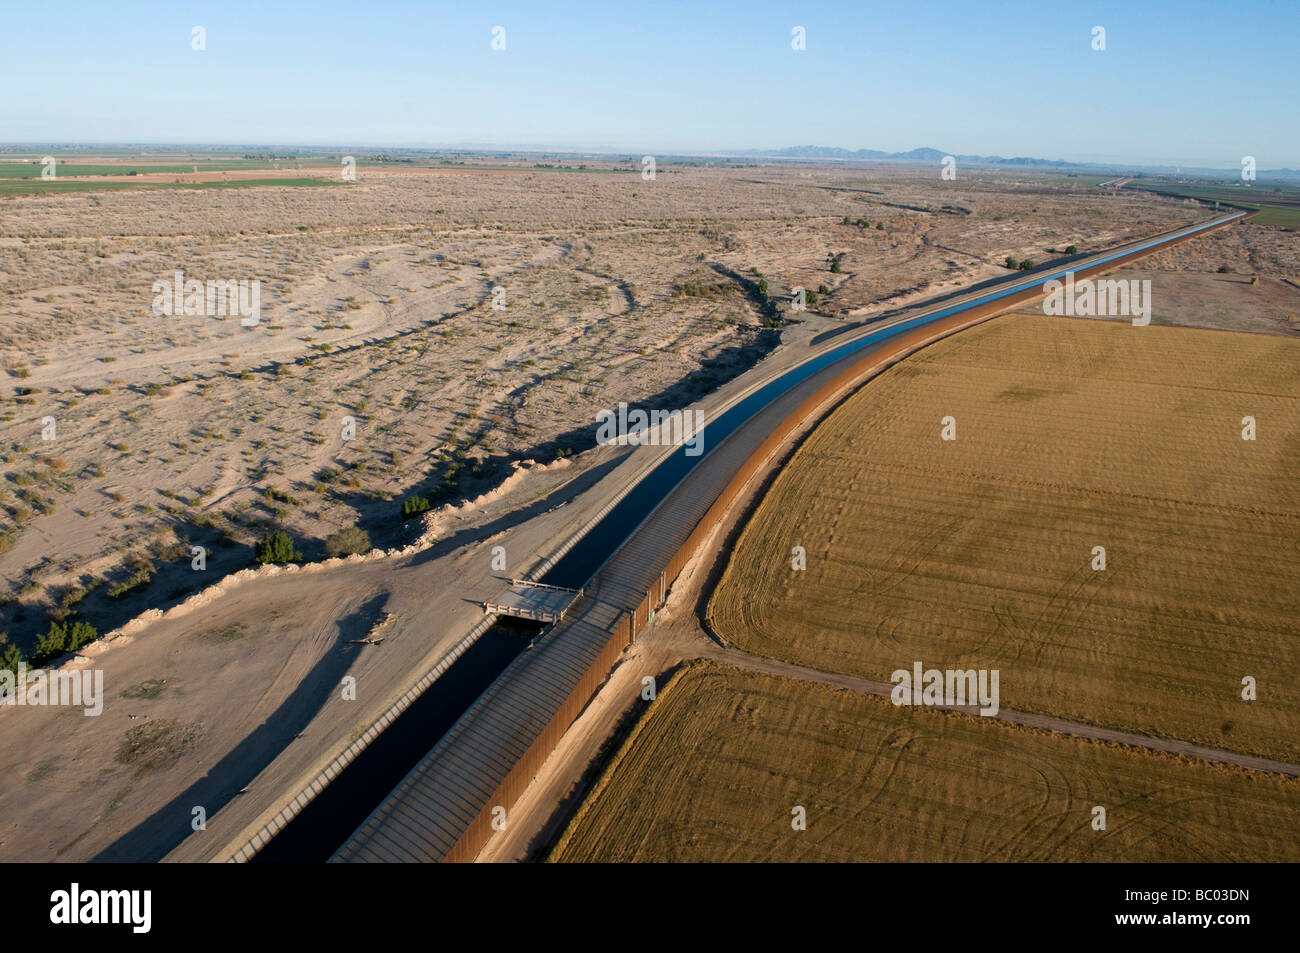 Aerial border patrol on the U.S./Mexico border. - Stock Image